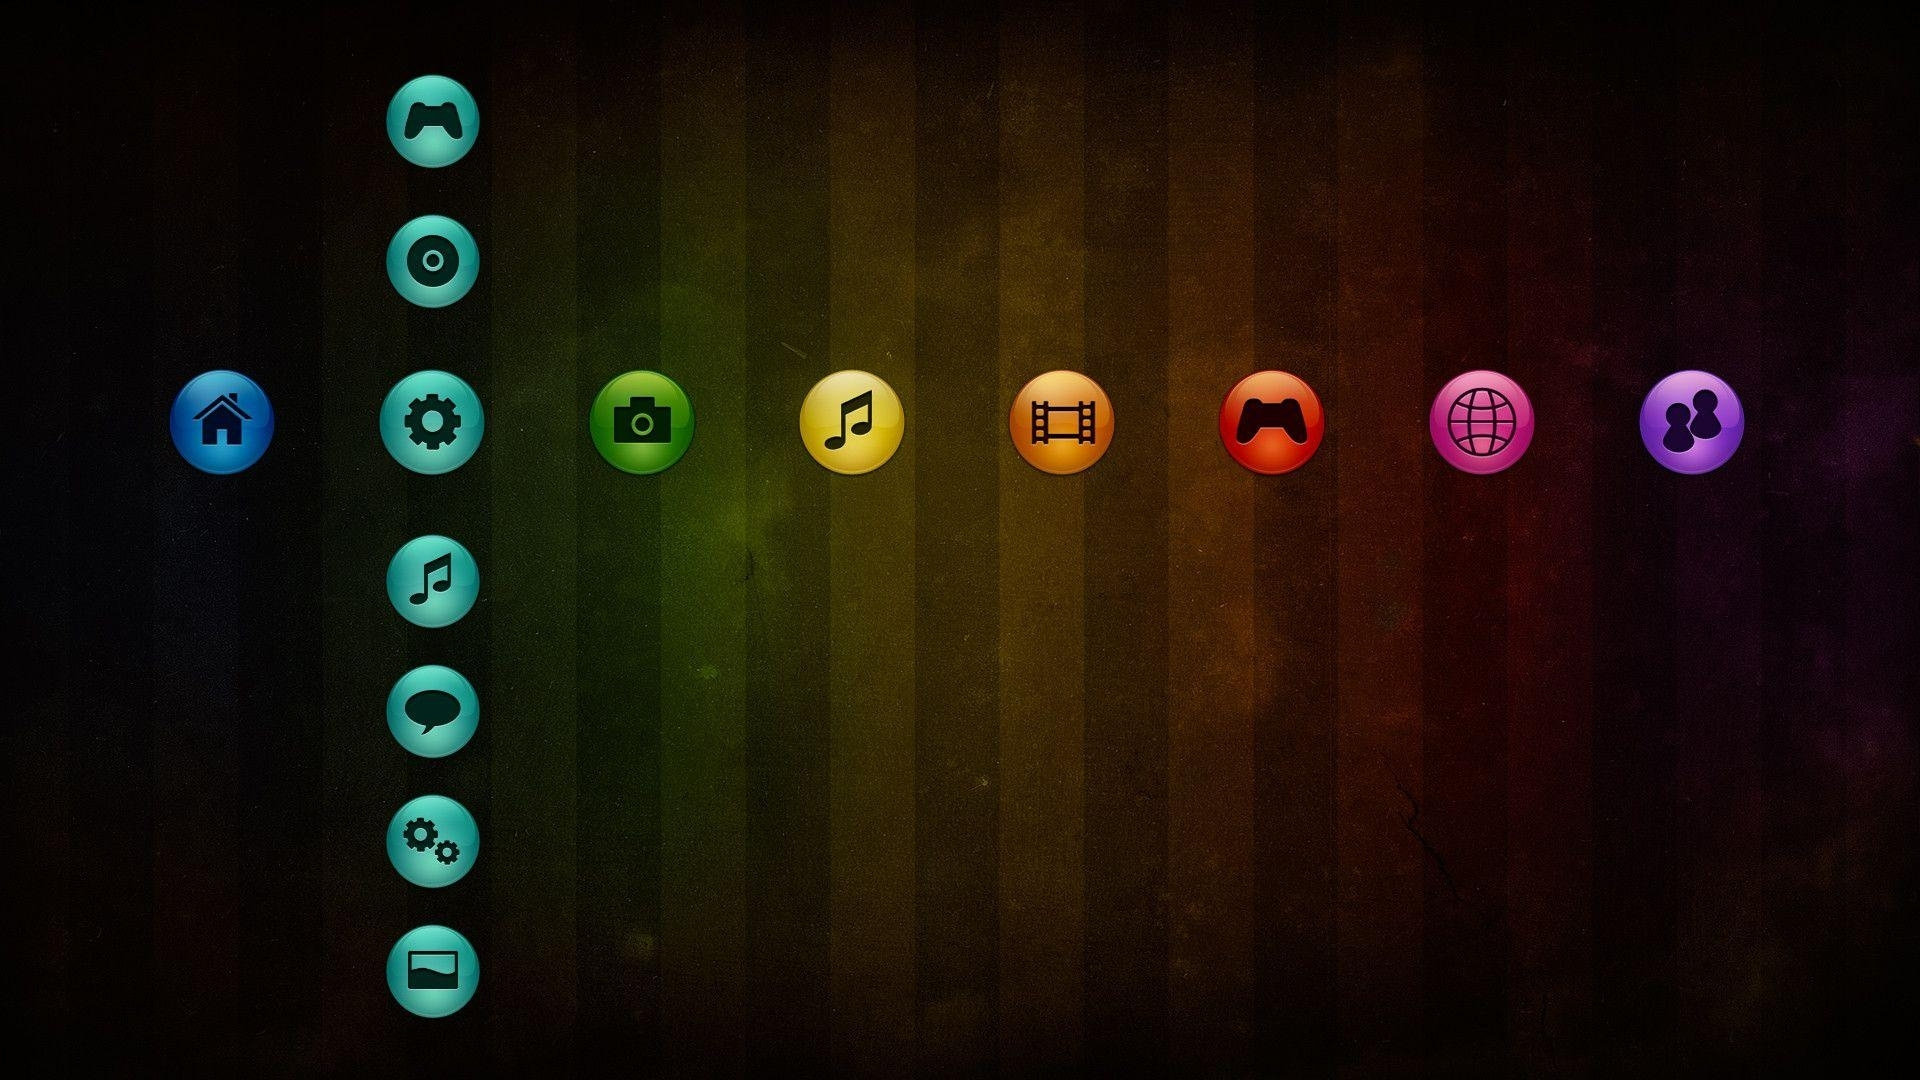 ps3 wallpapers and themes - wallpaper cave